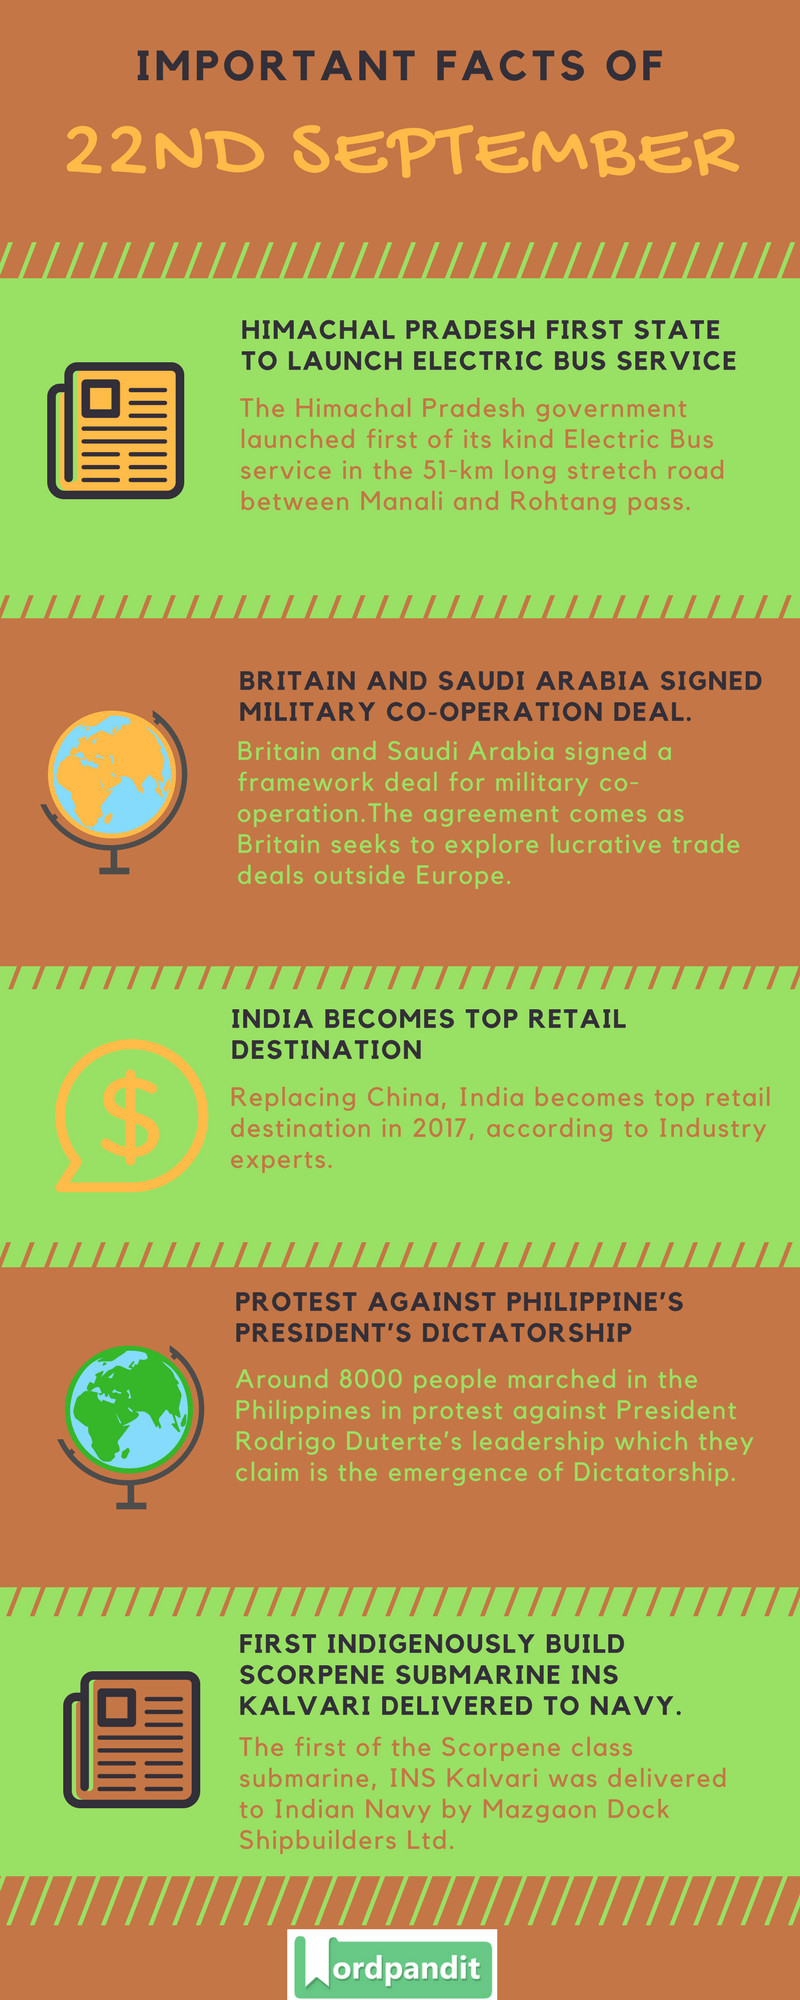 Daily-Current-Affairs-22-september-2017-Current-Affairs-Quiz-september-22-2017-Current-Affairs-Infographic